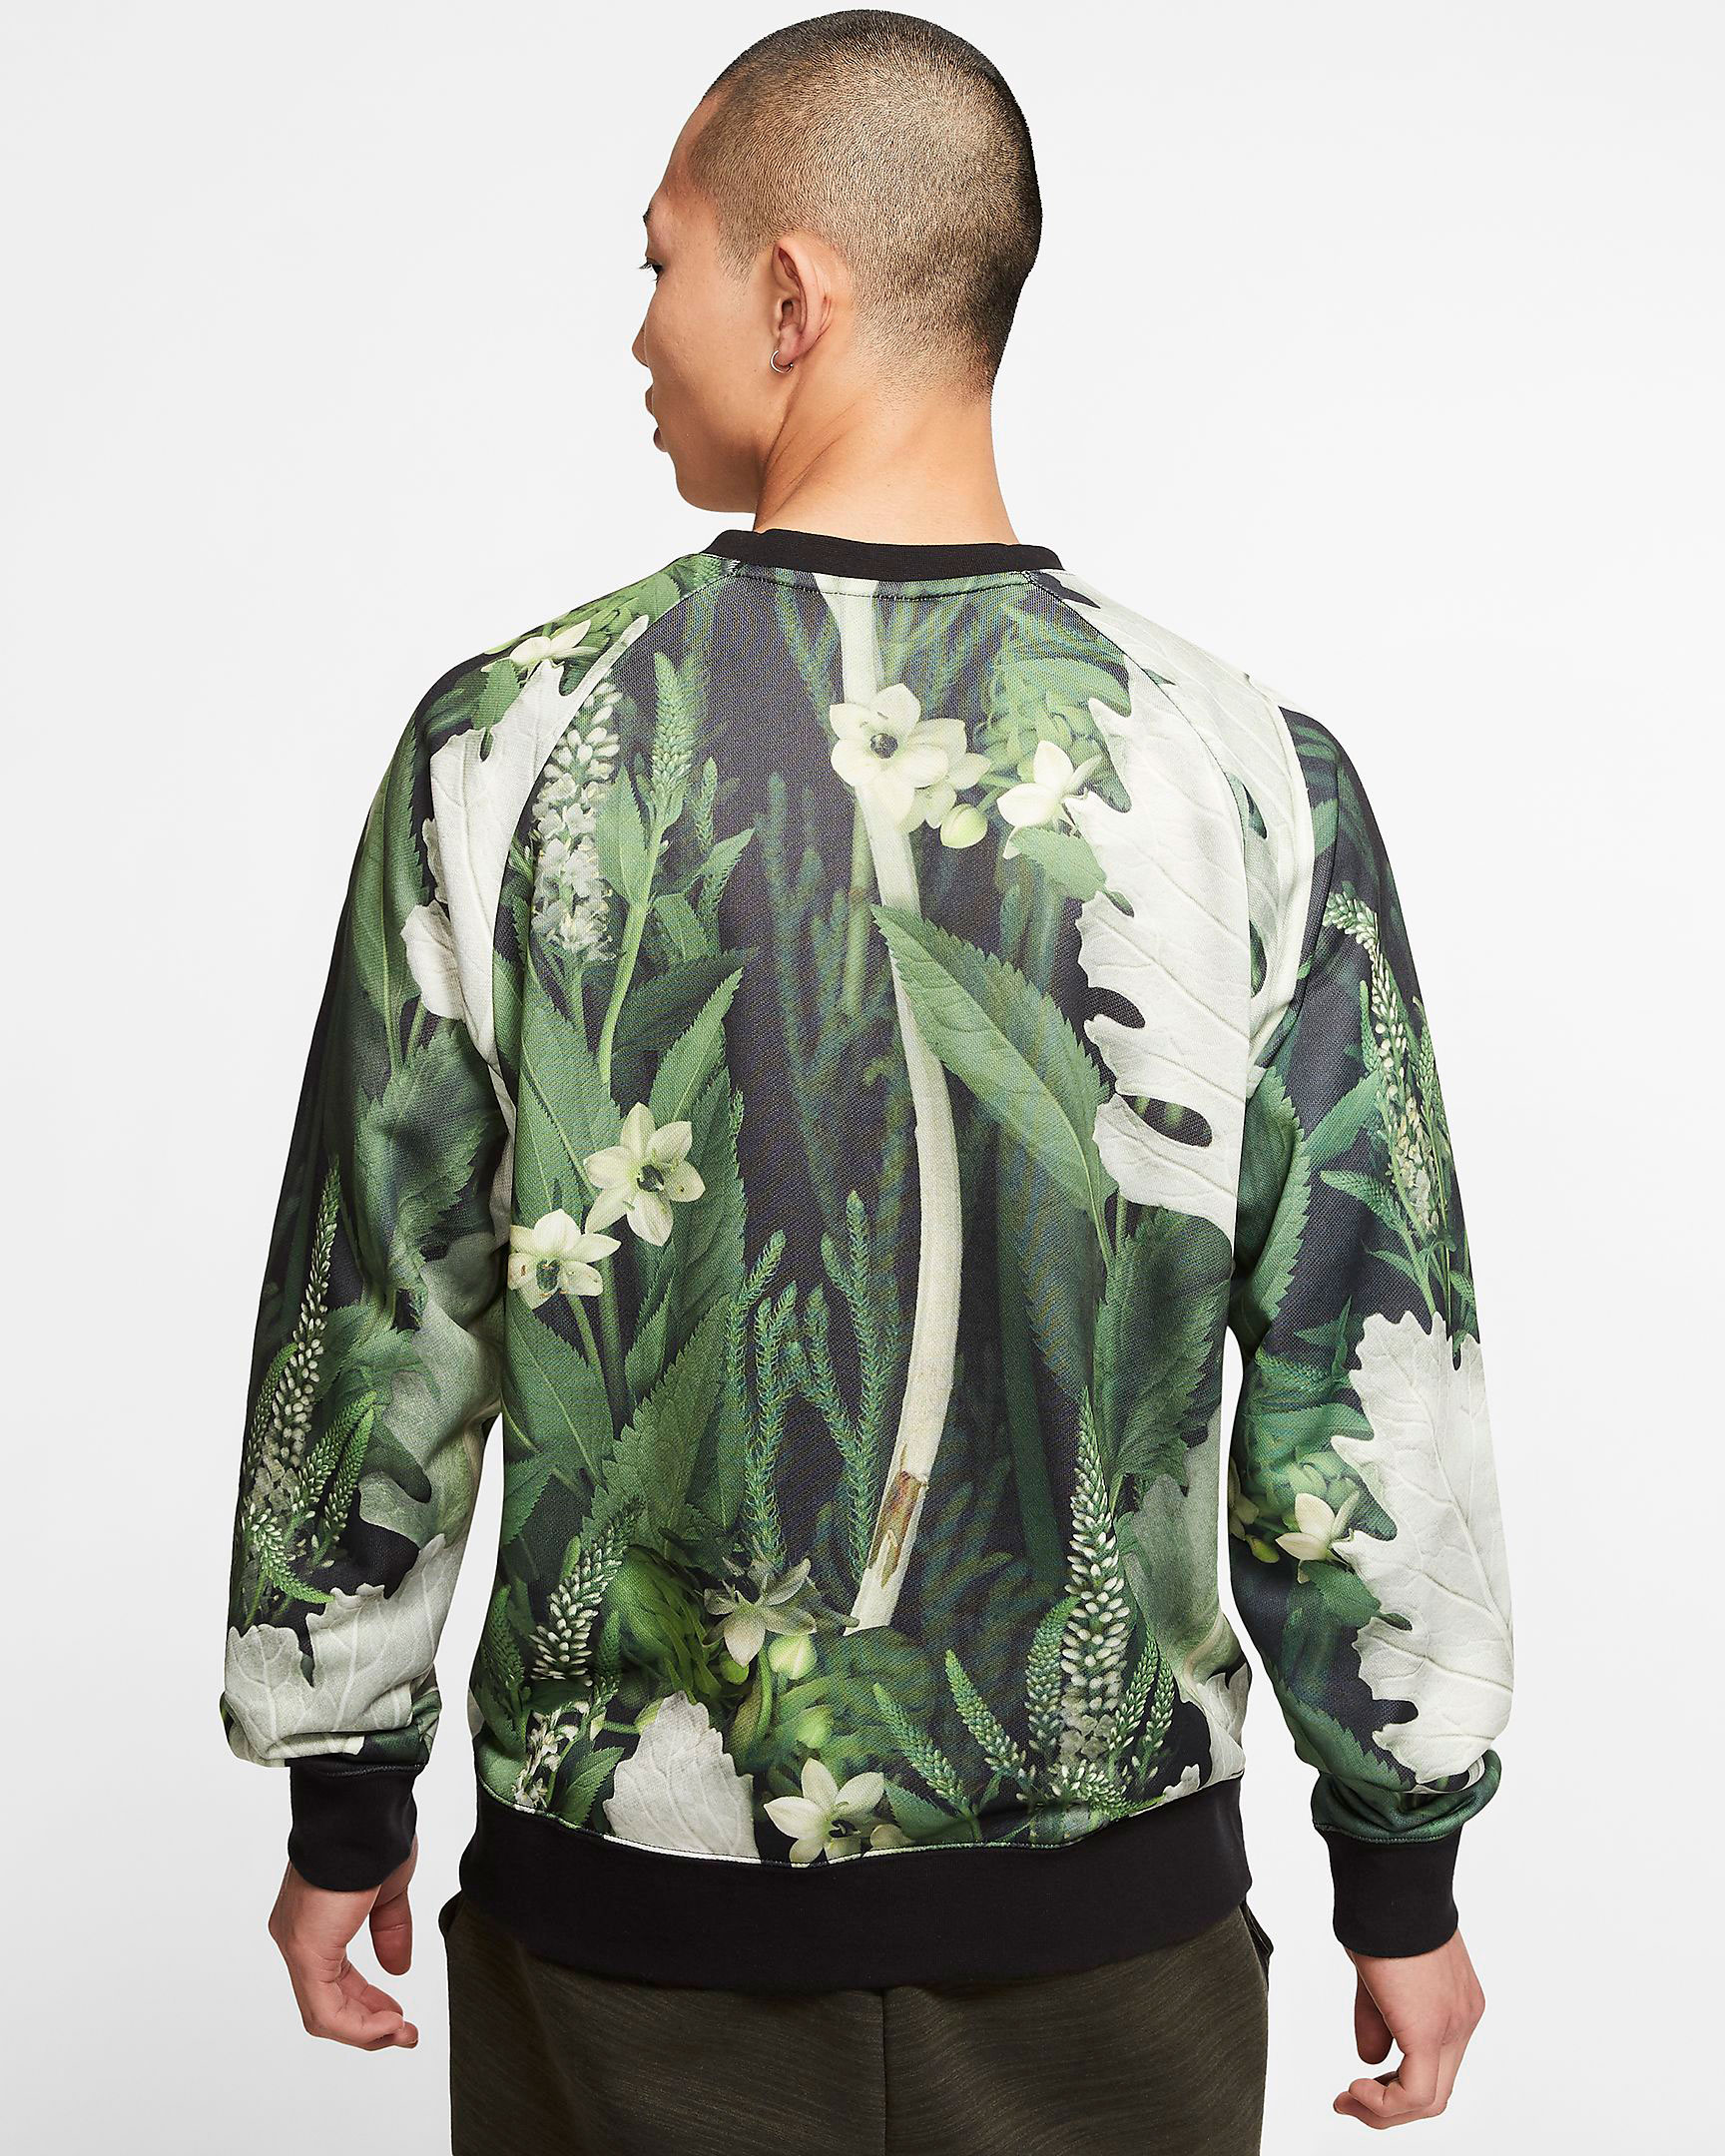 nike-just-do-it-floral-green-sweatshirt-2